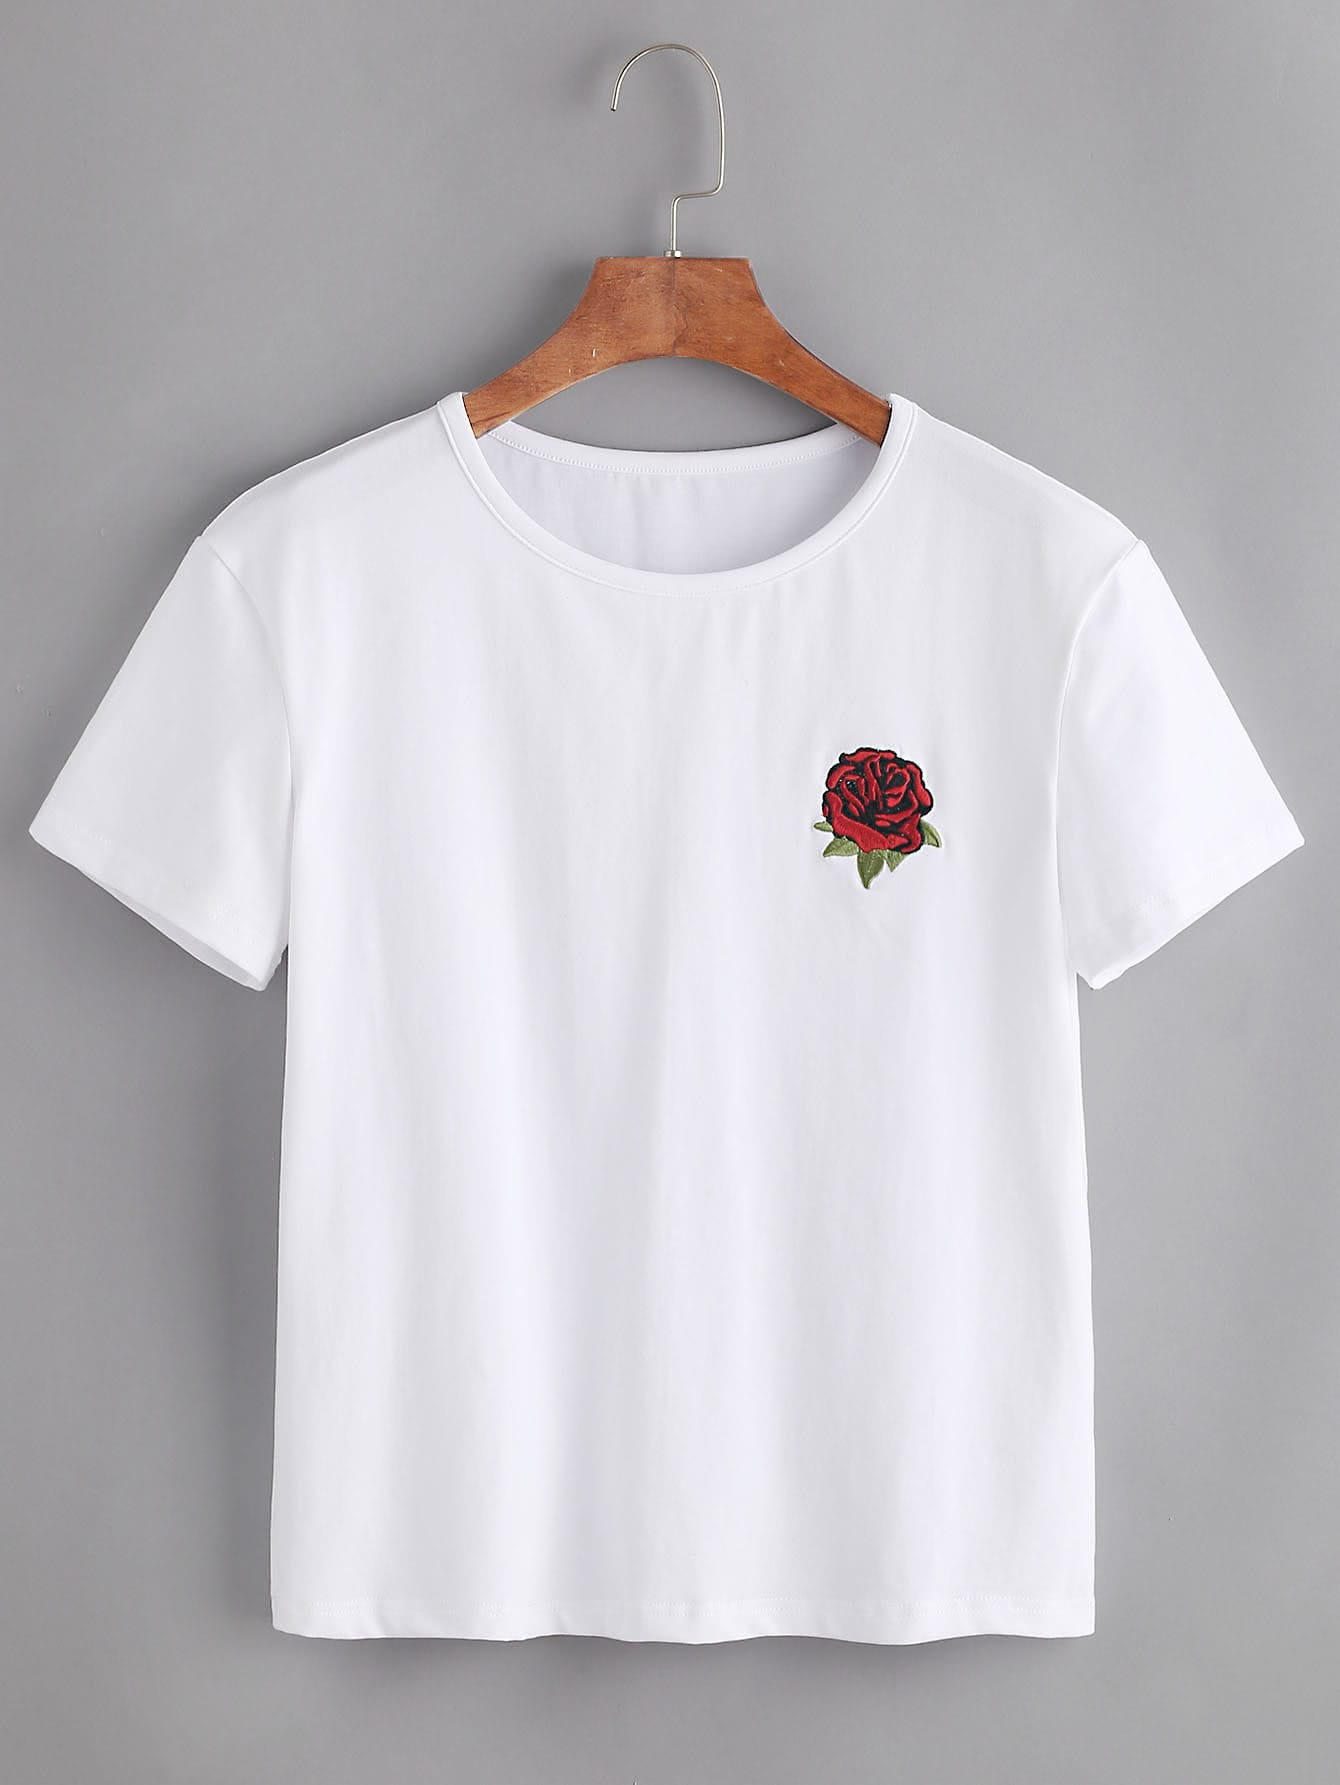 Vintage Guns N Roses T-shirts. invalid category id. Vintage Guns N Roses T-shirts. Showing 40 of results that match your query. Search Product Result. Product - Guns N Roses - Trashy Skull Tour T-Shirt. Clearance. Product Image. Price $ List price $